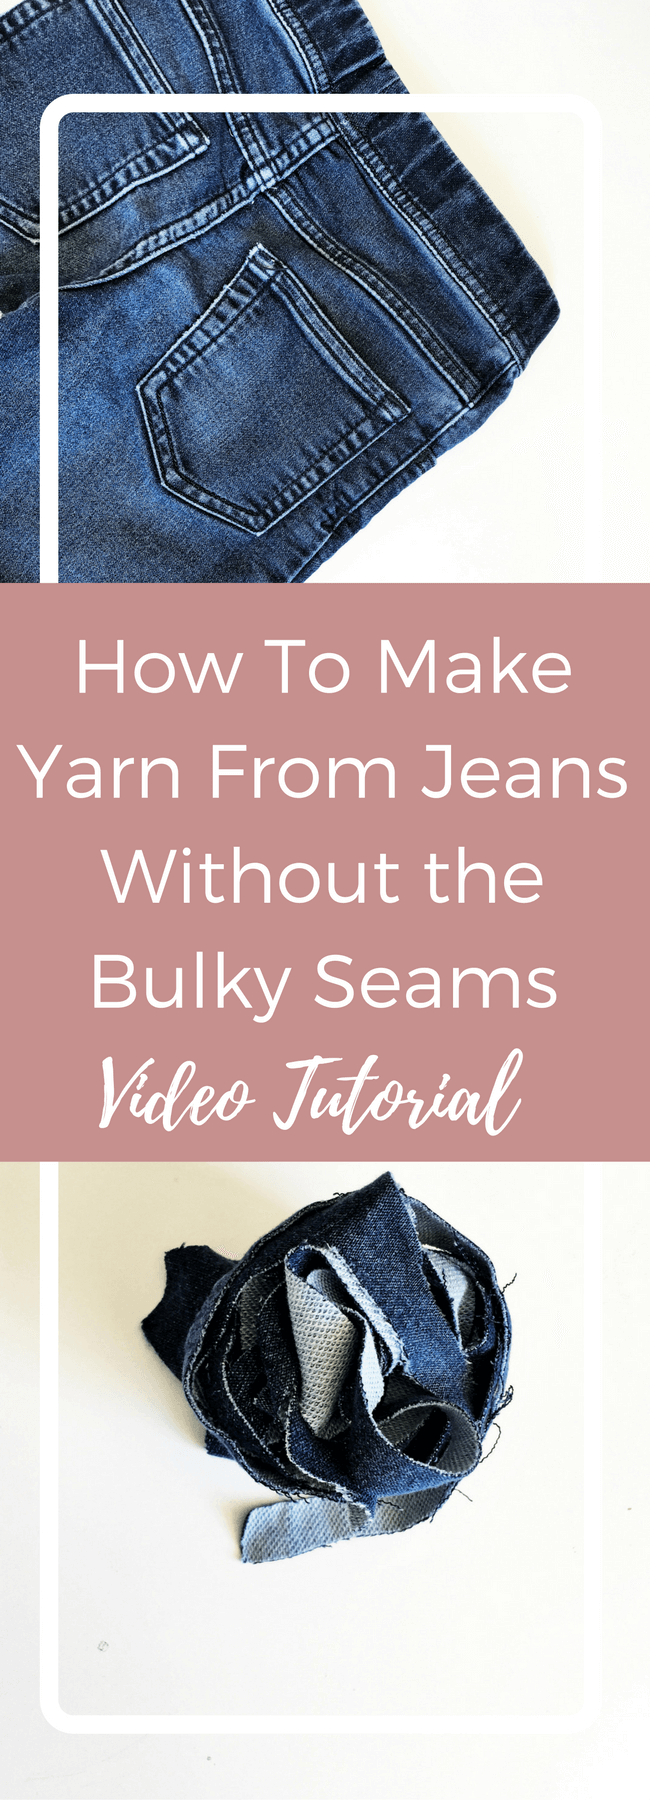 how to turn jeans into yarn video tutorial, make yarn from jeans, denim yarn, repurpose old jeans